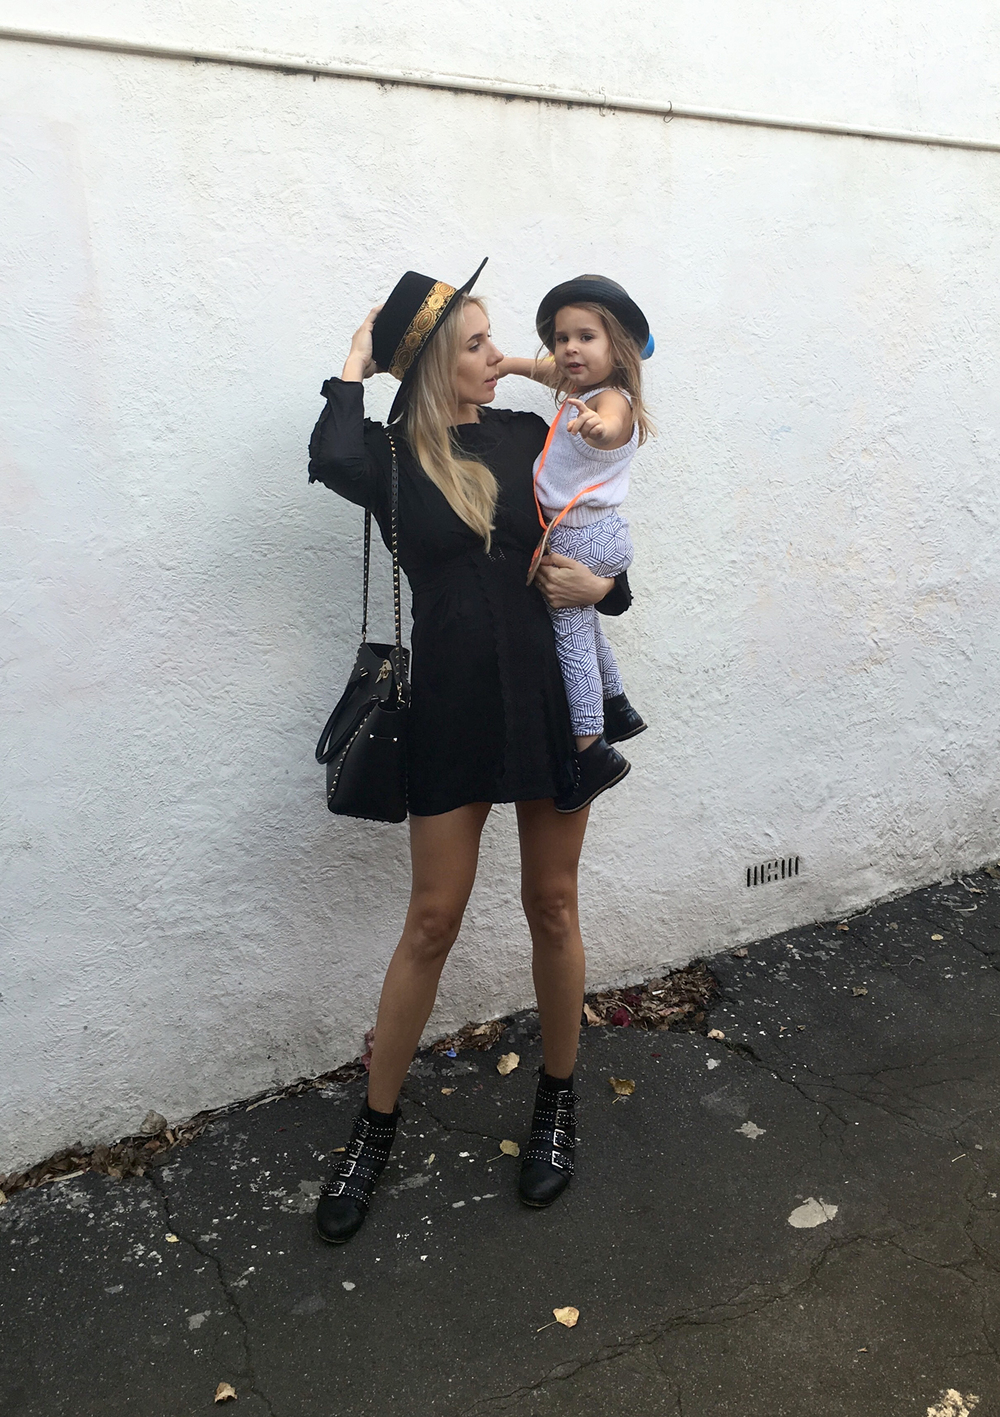 Monochrome joggers. Mommy and me street style